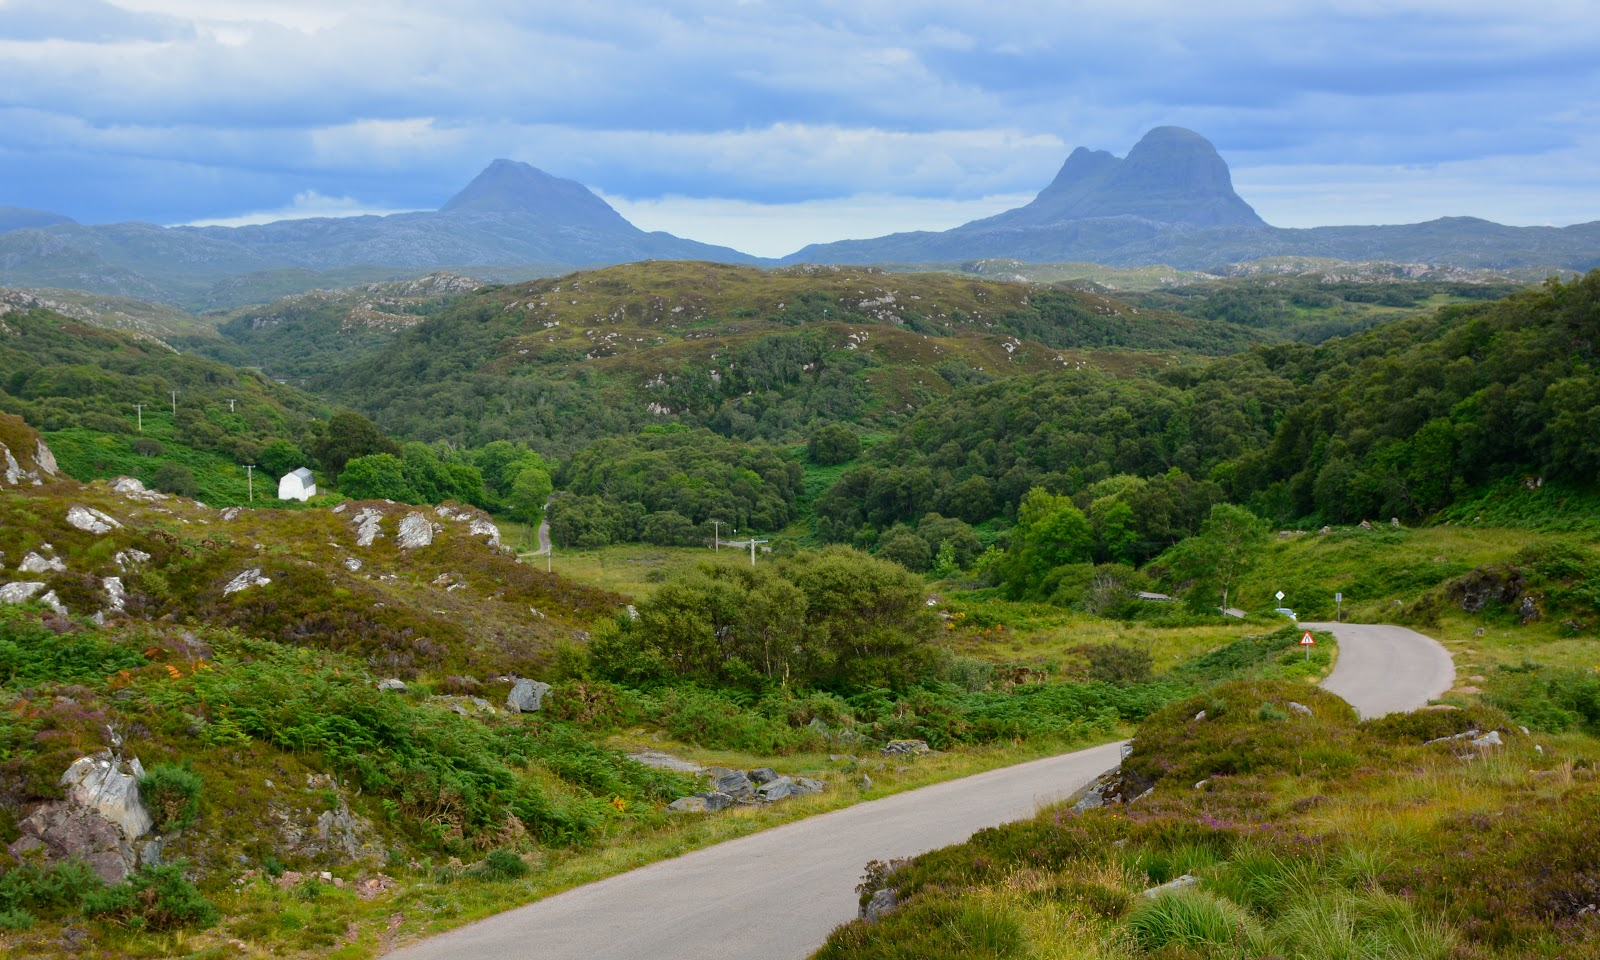 Assynt in northwestern Scotland